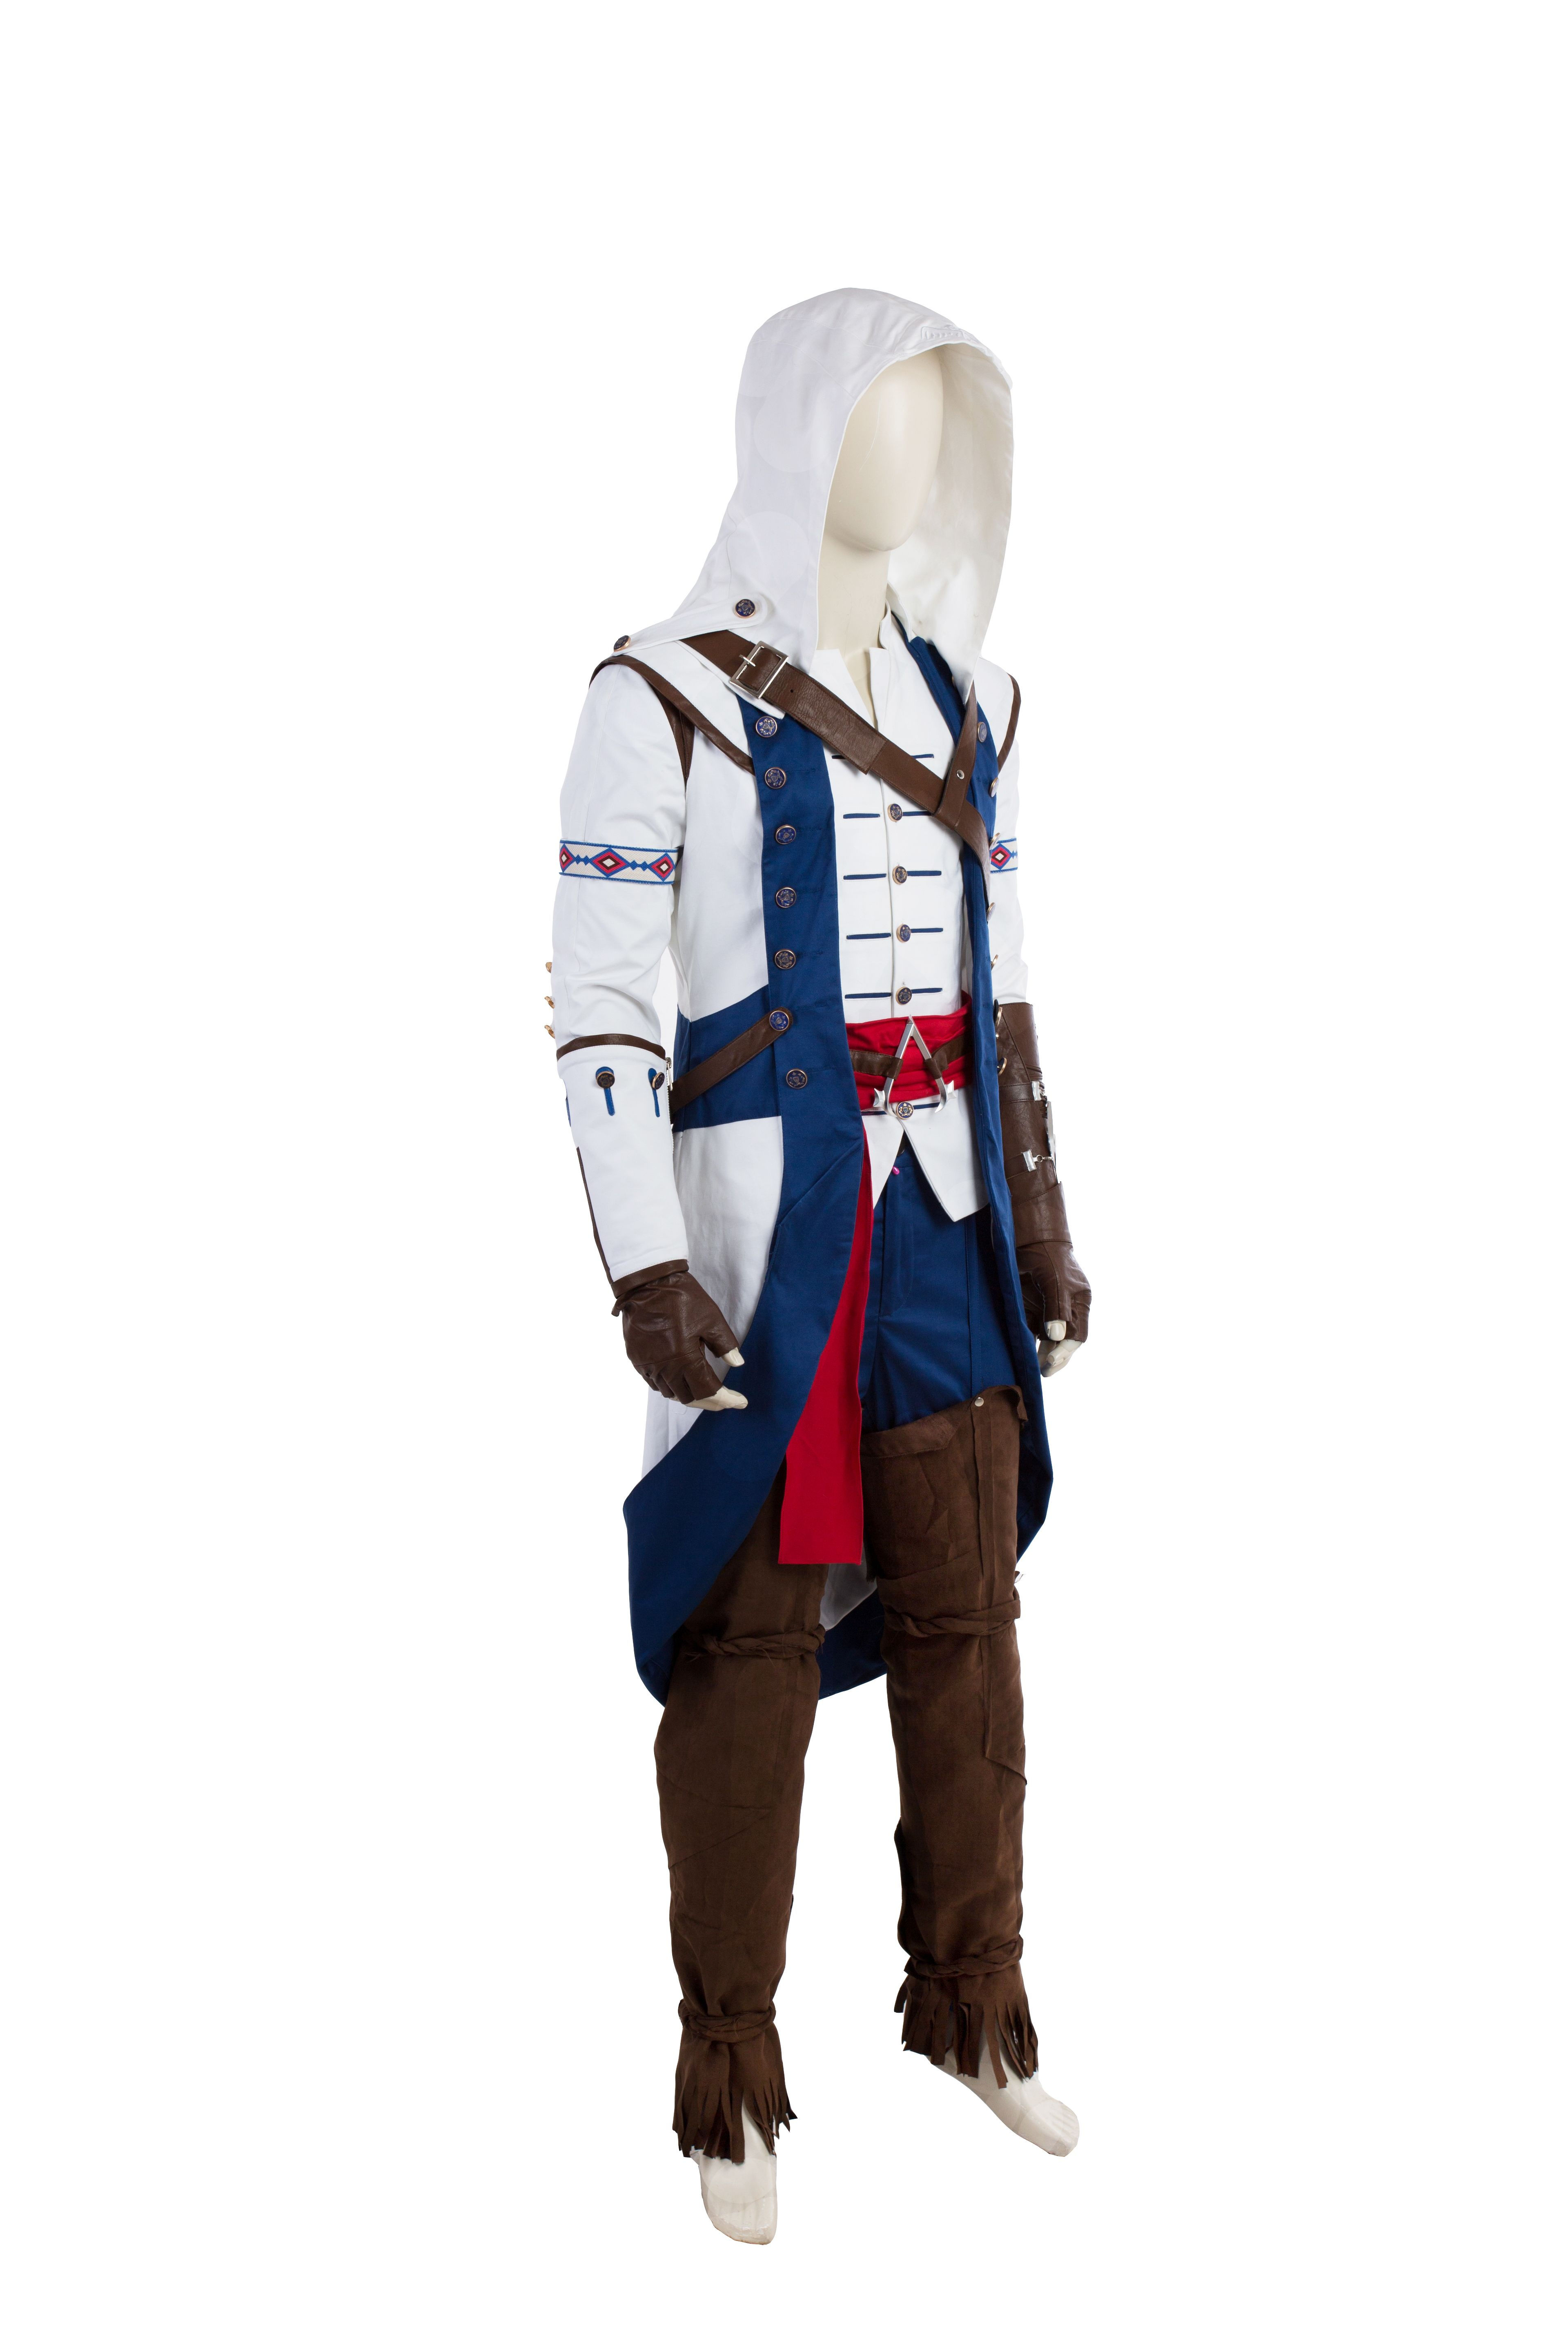 manluyunxiao new arrival movie assassins creed charactar connor